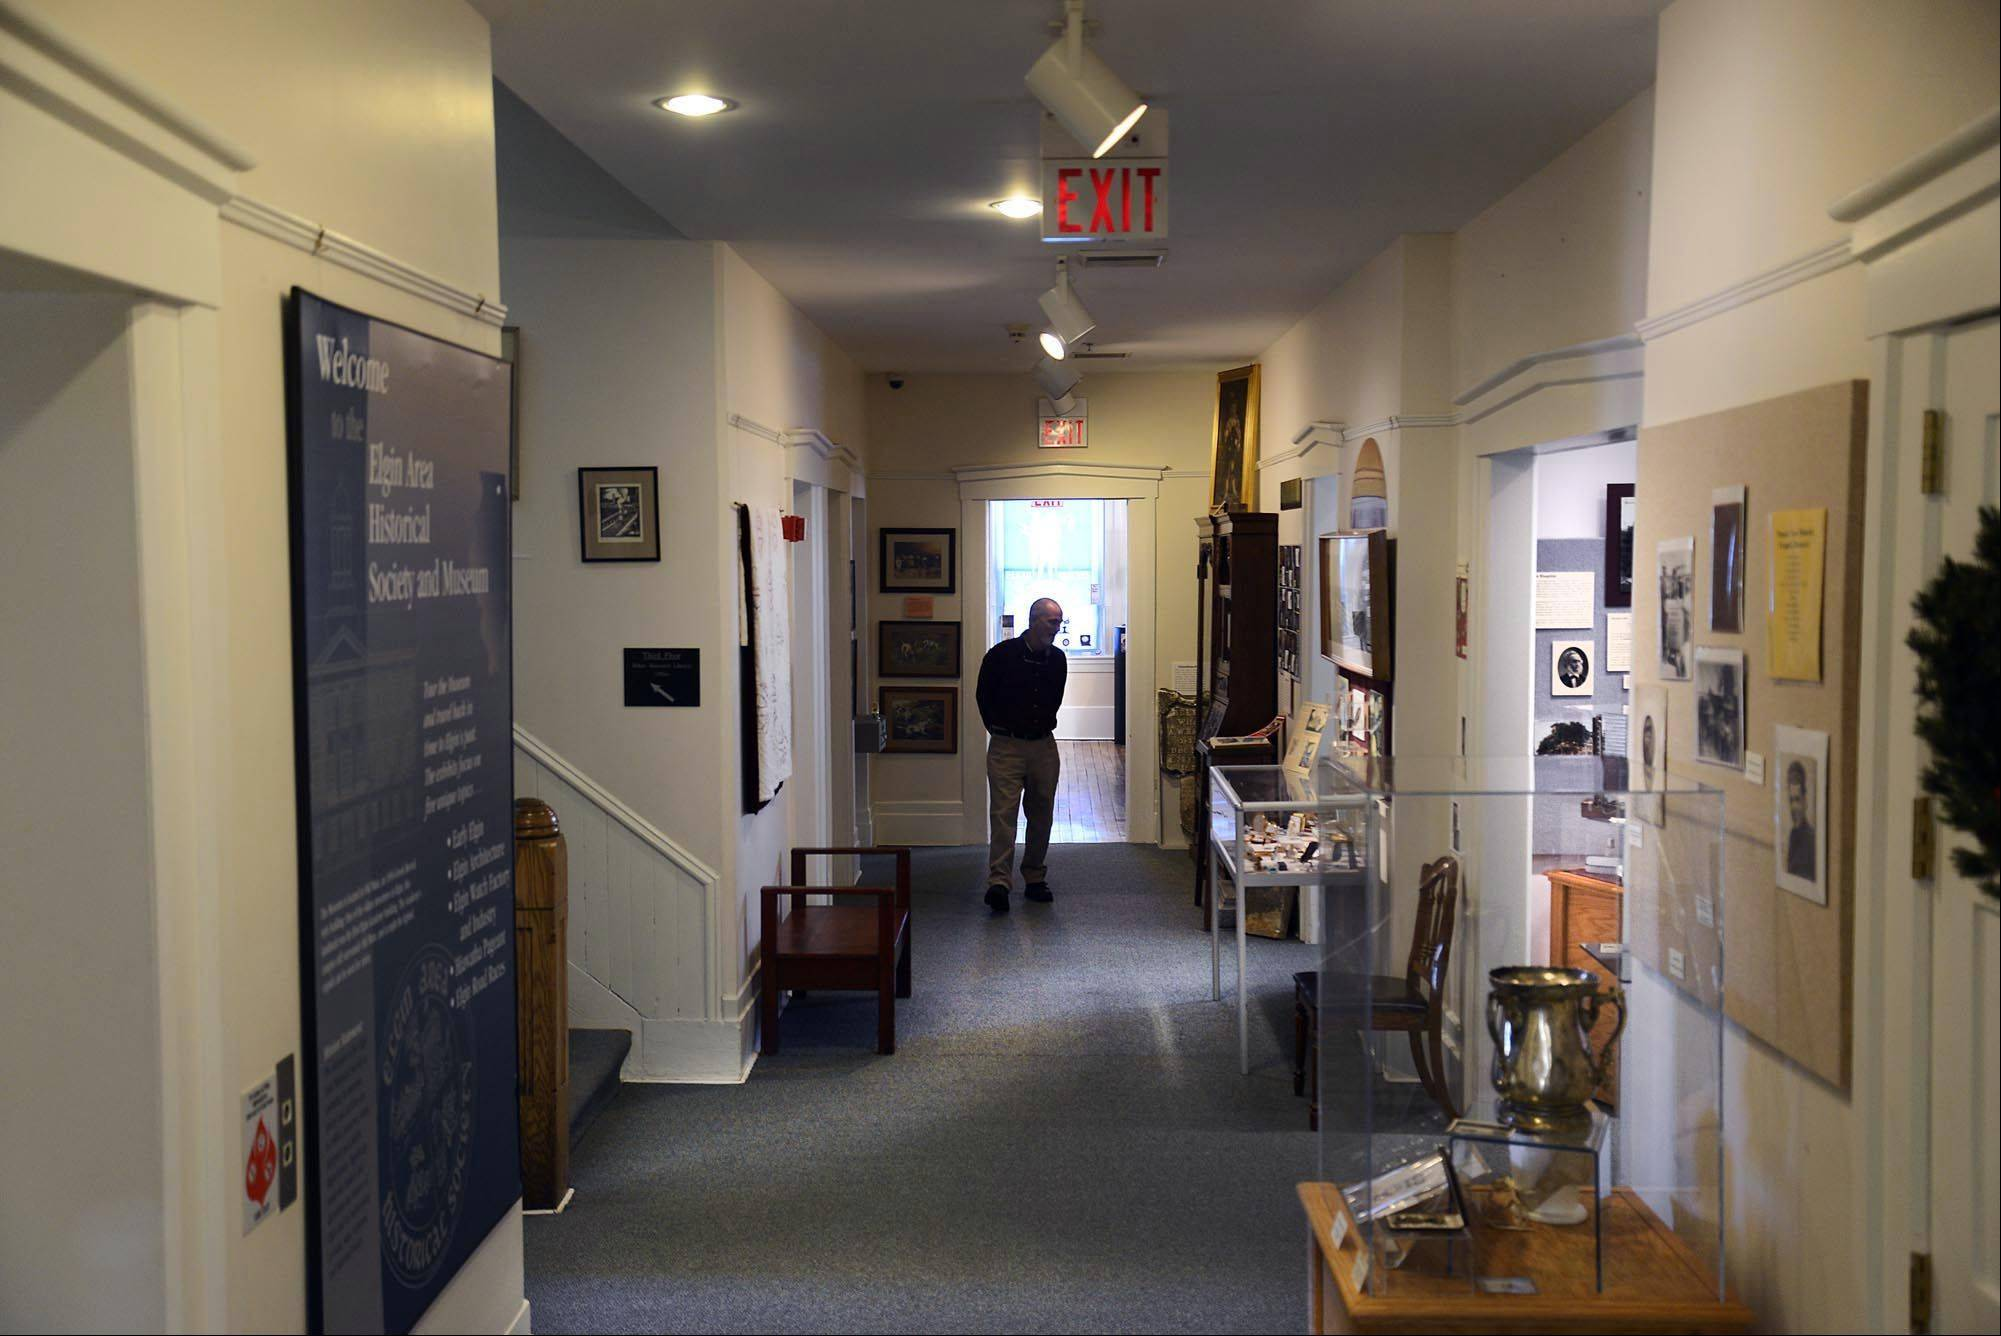 George Rowe stands in a second floor hallway of the Elgin History Museum. As president of the Elgin Area Historical Society, it is his job to keep control of the 159-year-old landmark museum on the campus of Elgin Academy. The museum was built in 1855 and was the first high school in Illinois. It now houses more than 10,000 Elgin historical artifacts.